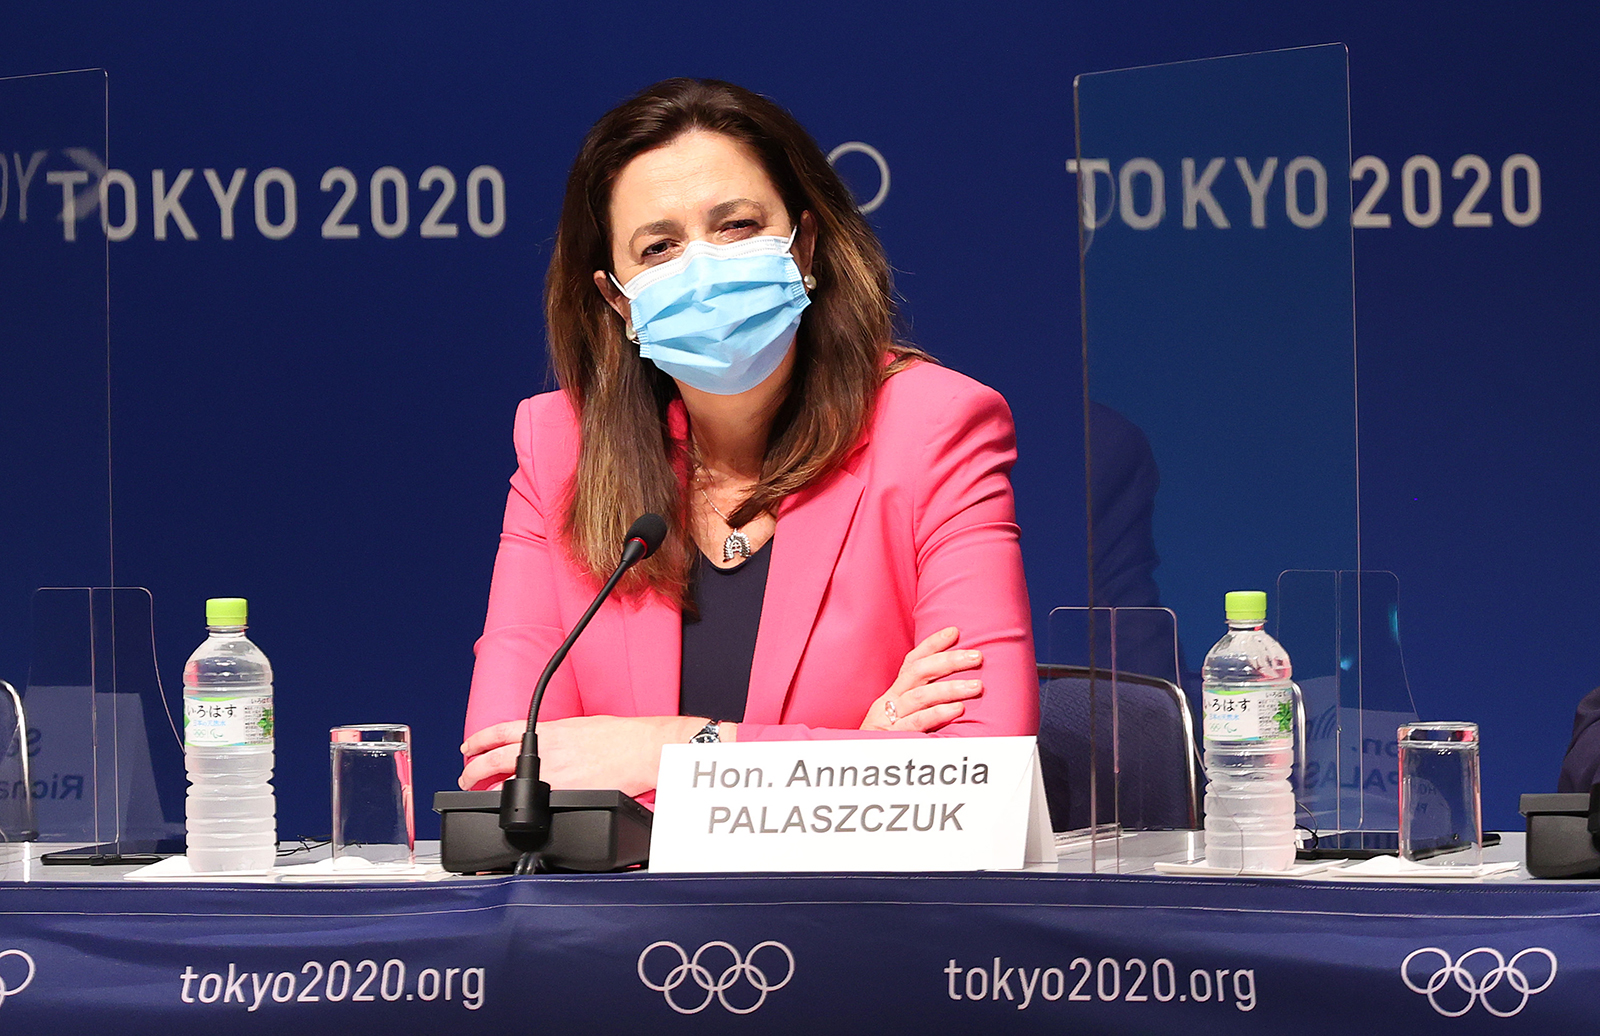 Queensland Premier Annastacia Palaszczuk during the IOC news conference ahead of the Tokyo 2020 Olympic Games on July 21, in Tokyo, Japan.